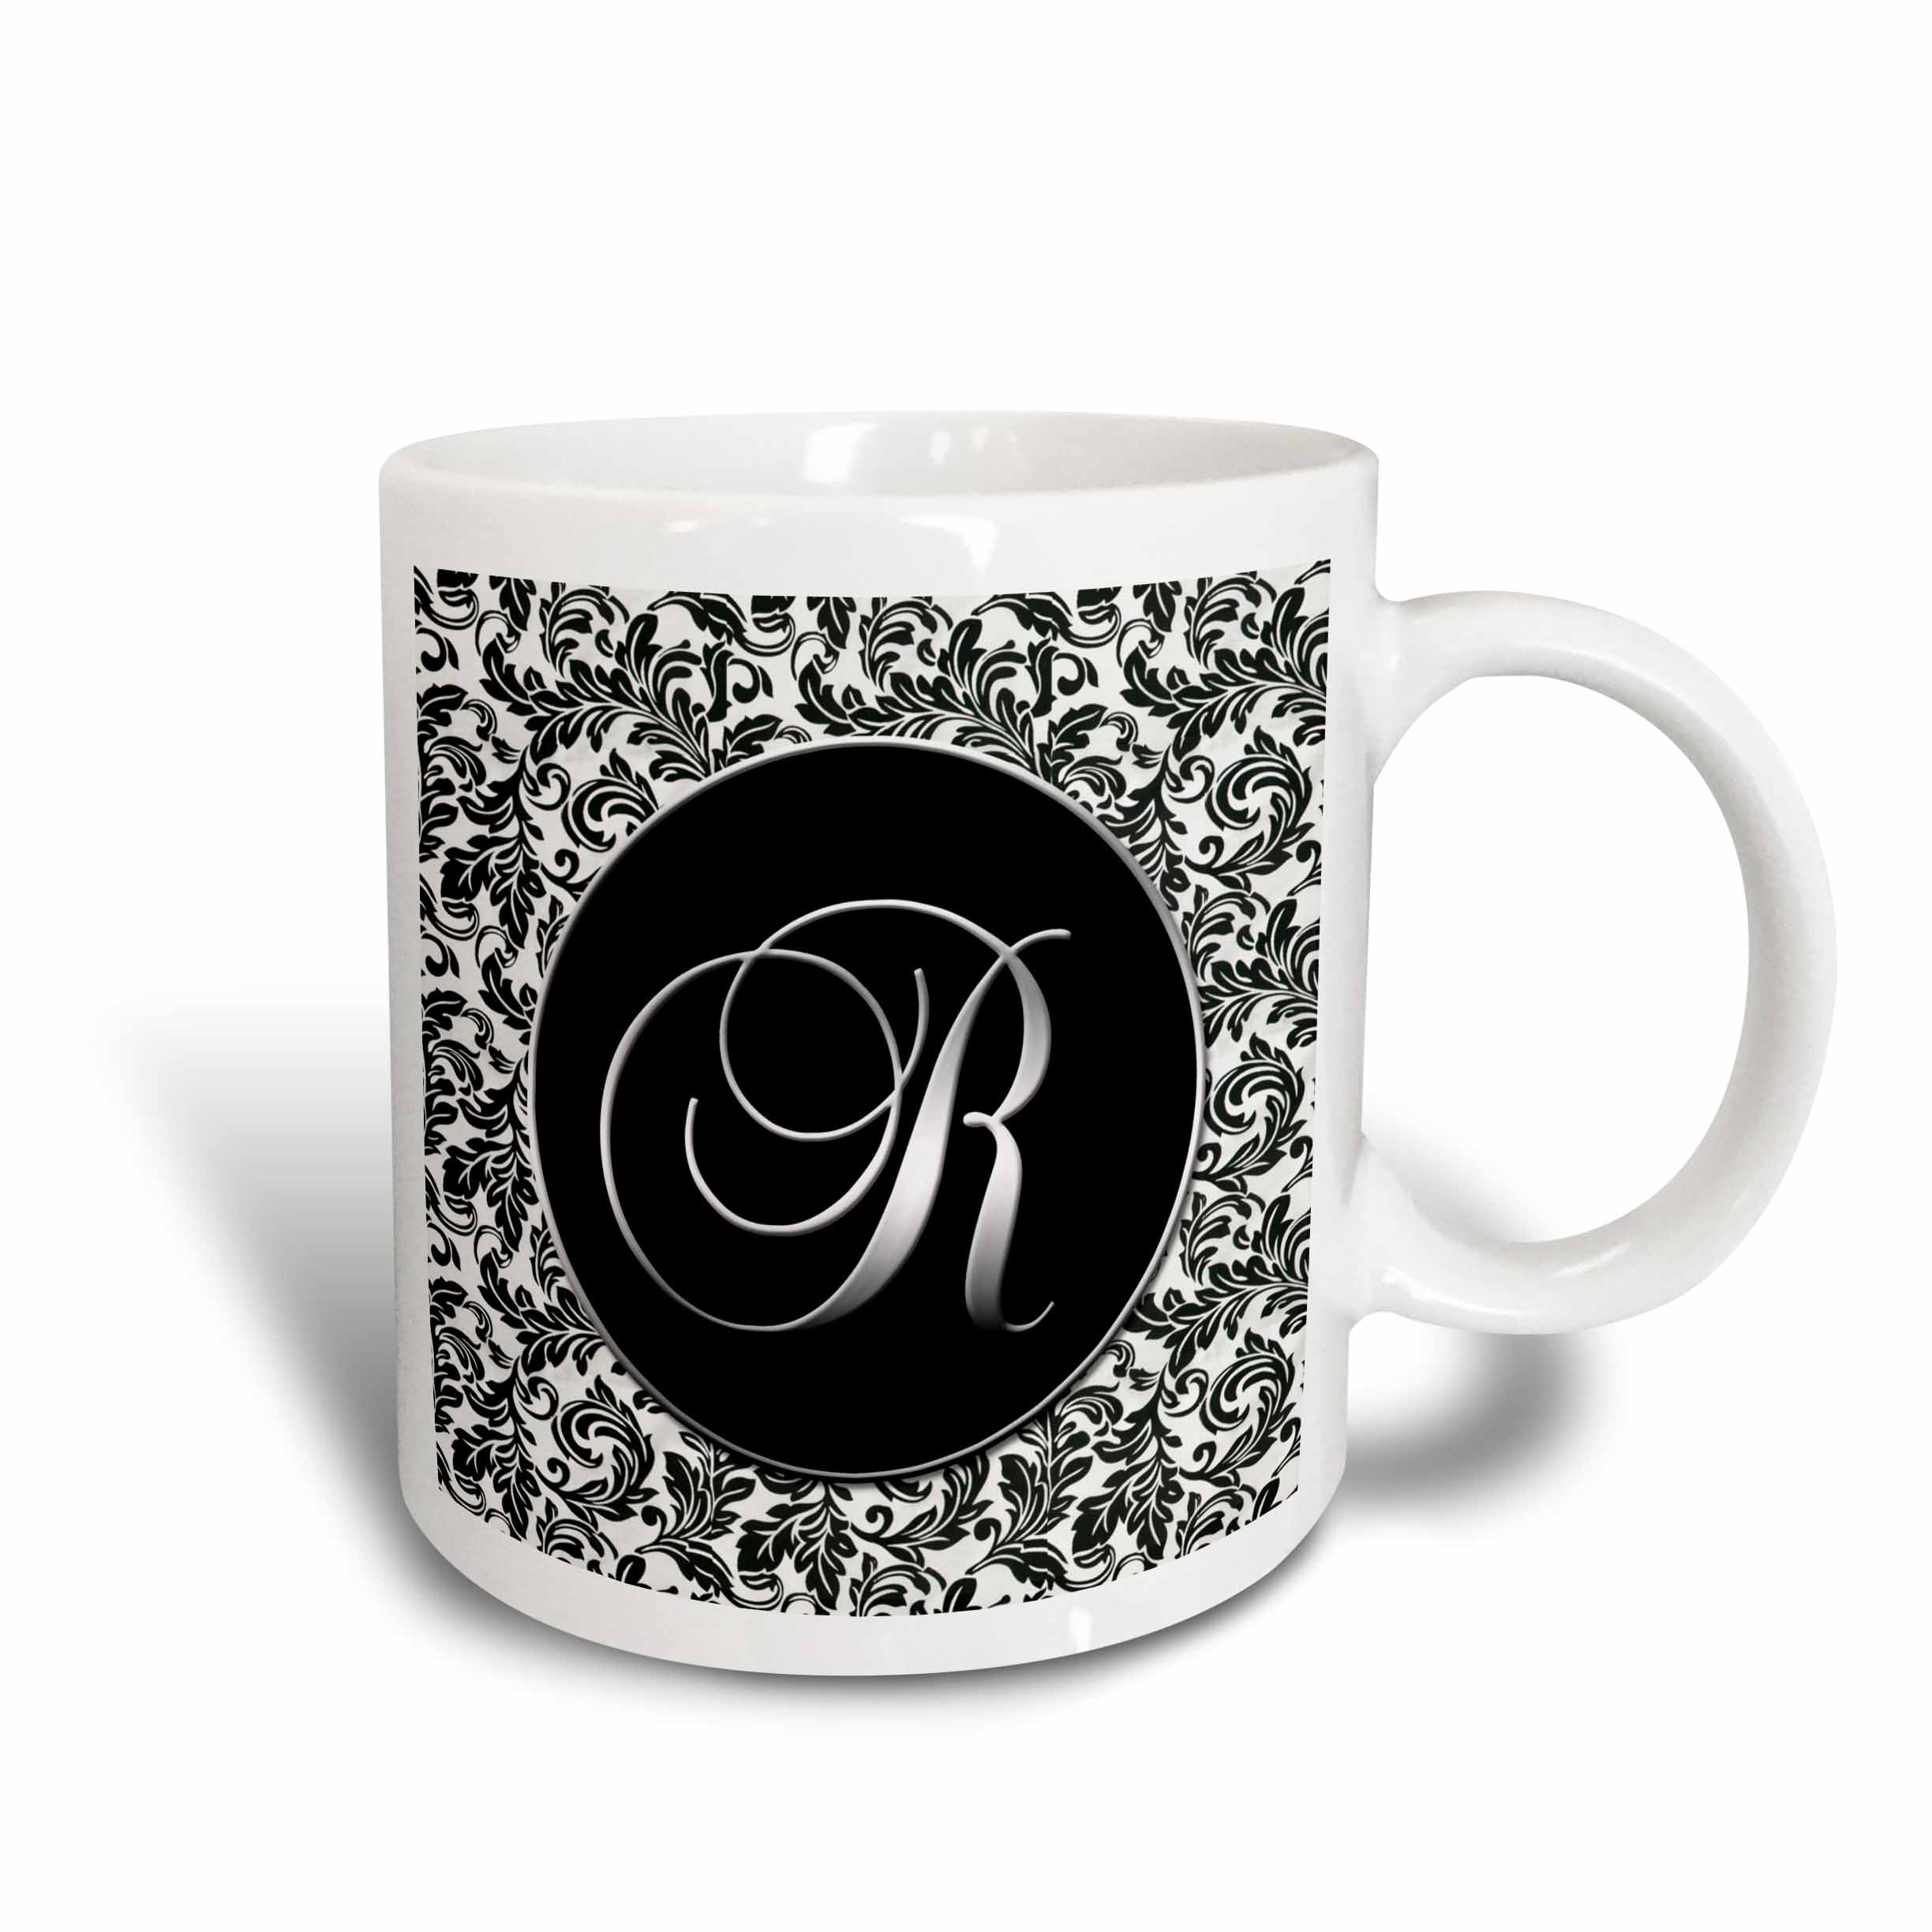 3dRose Letter R - Black and White Damask, Ceramic Mug, 15-ounce